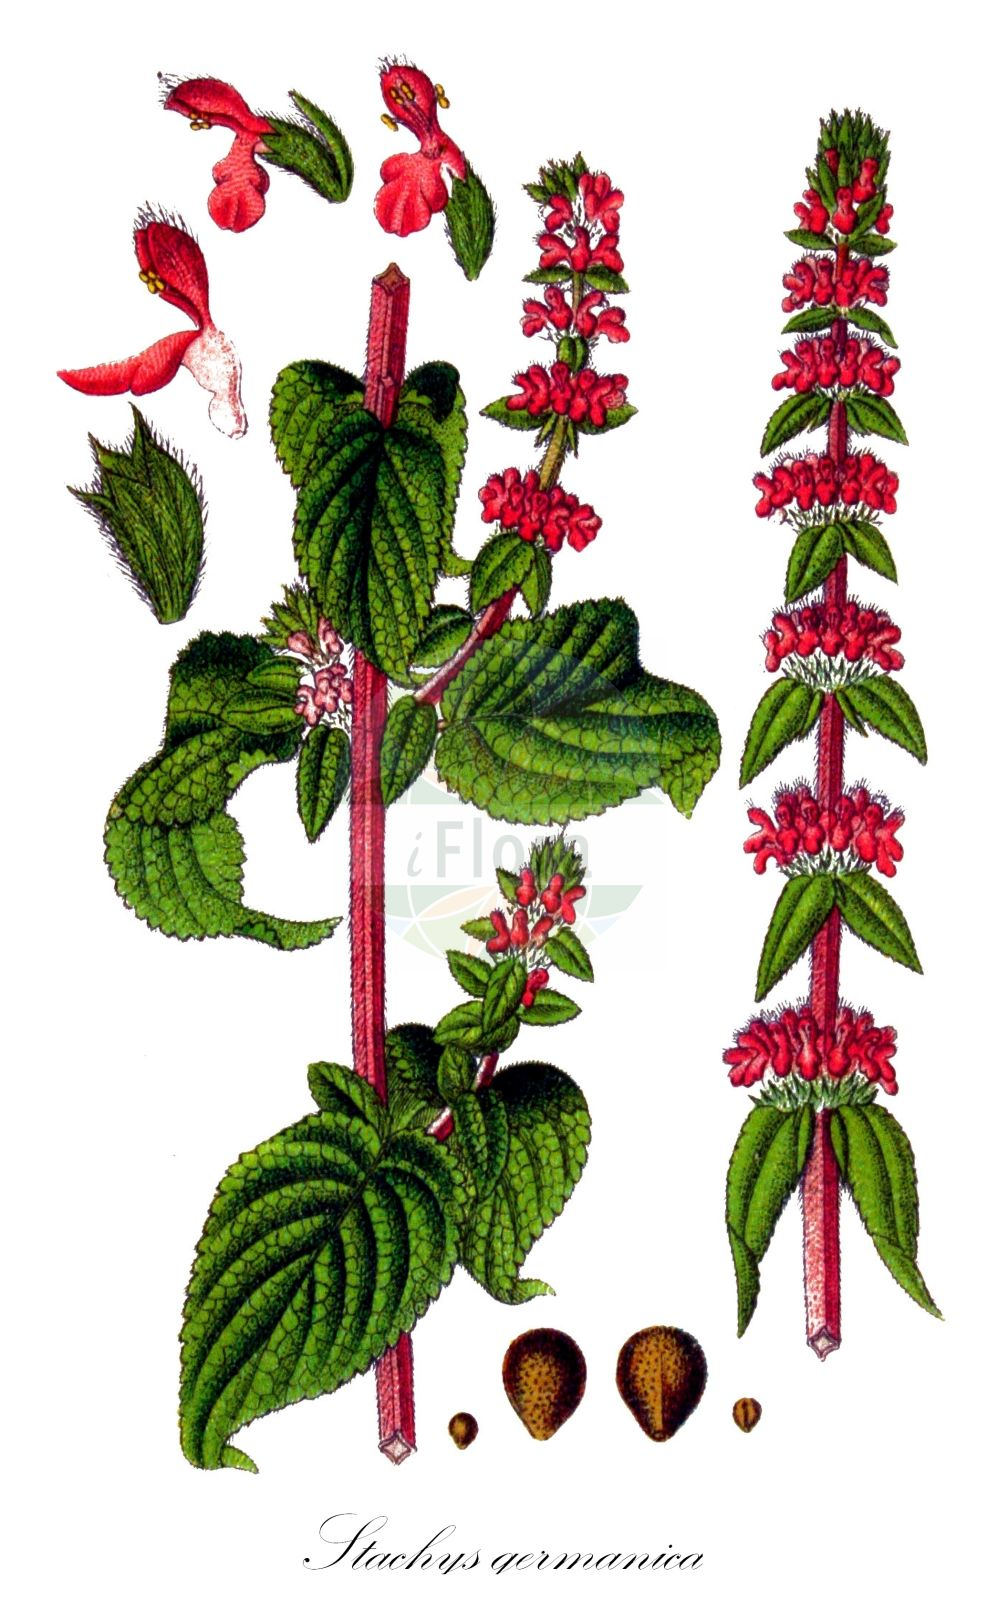 Historische Abbildung von Stachys germanica (Deutscher Ziest - Downy Woundwort). Das Bild zeigt Blatt, Bluete, Frucht und Same. ---- Historical Drawing of Stachys germanica (Deutscher Ziest - Downy Woundwort).The image is showing leaf, flower, fruit and seed.(Stachys germanica,Deutscher Ziest,Downy Woundwort,Eriostomum germanicum,Leonurus germanica,,German Hedge Nettle,German Stachys,Stachys,Ziest,Hedgenettle,Lamiaceae,Lippenbluetengewaechse;Lippenbluetler,Nettle family,Blatt,Bluete,Frucht,Same,leaf,flower,fruit,seed,Sturm (1796f))